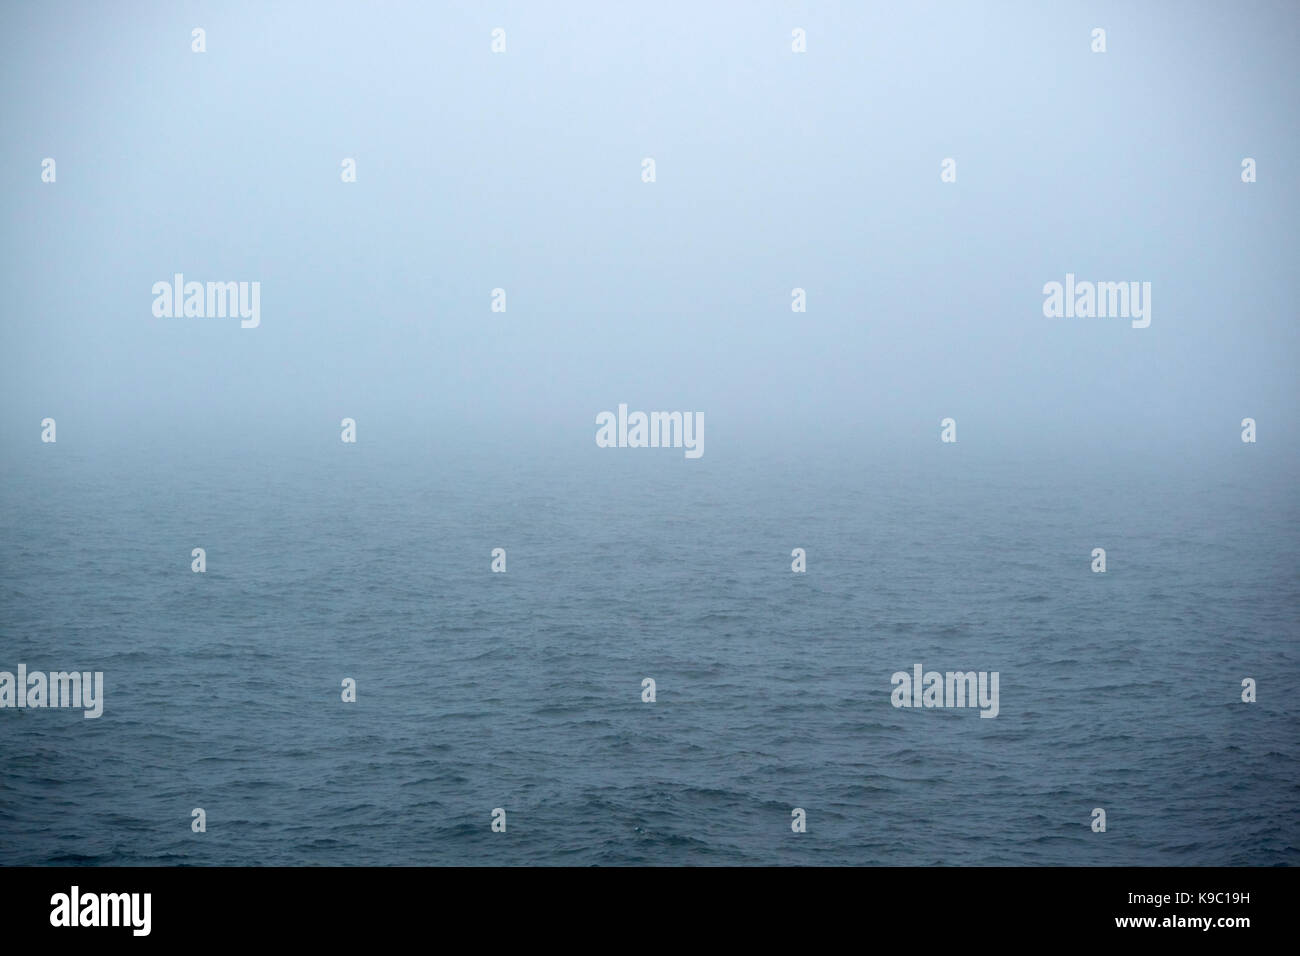 foggy day at sea - Stock Image